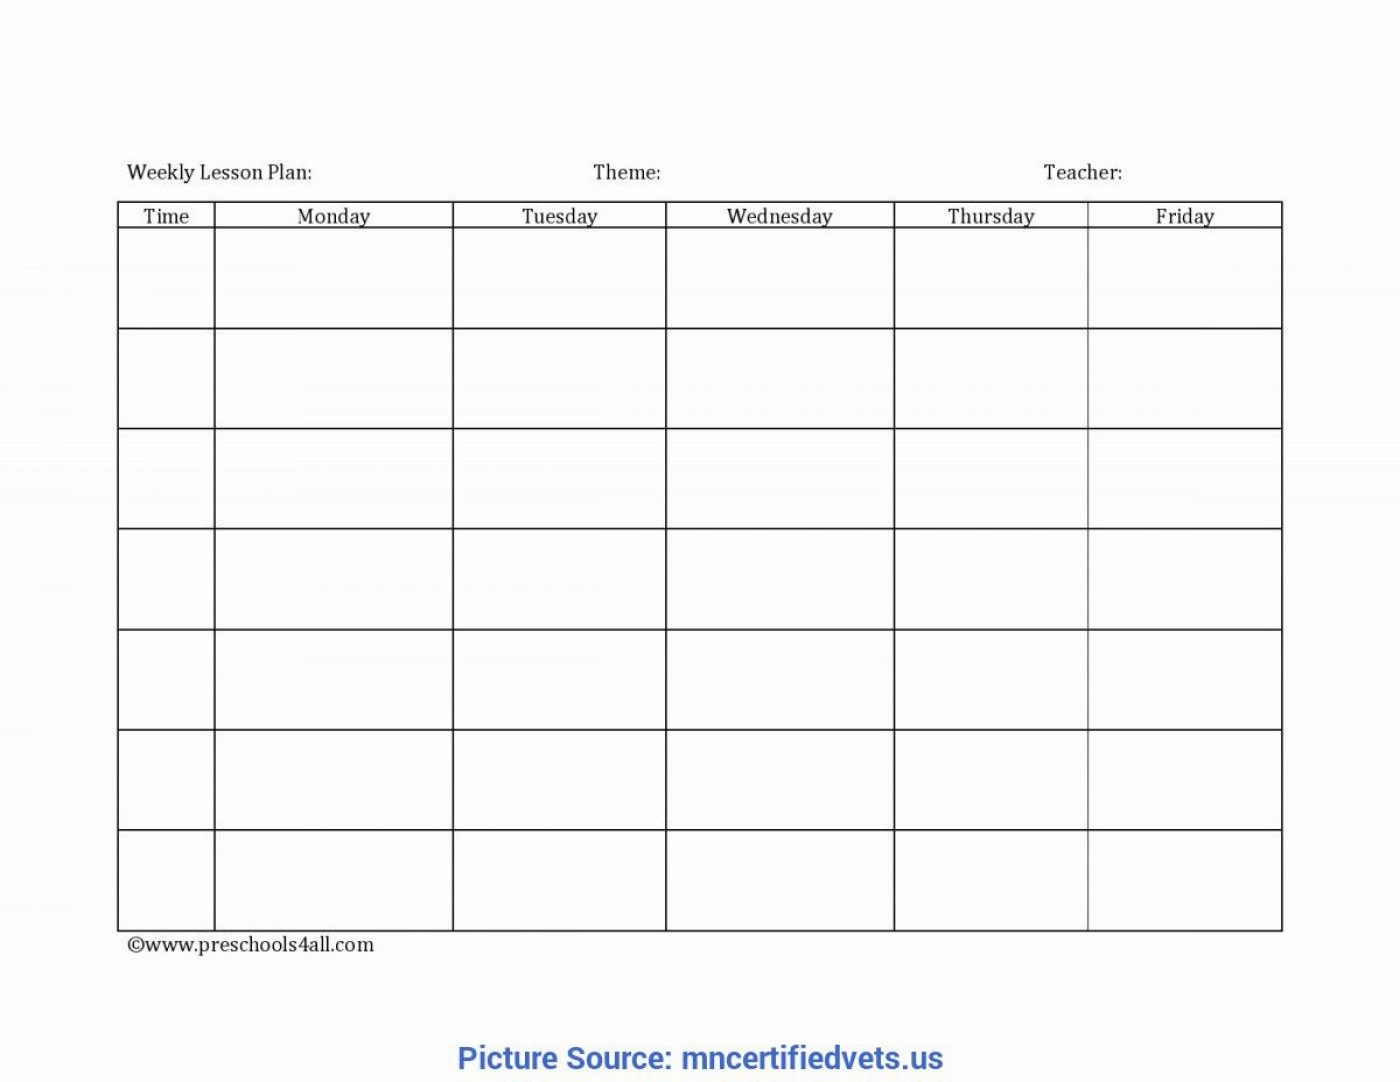 006 Unbelievable Weekly Lesson Plan Template Photo  Preschool Google Doc Editable1400